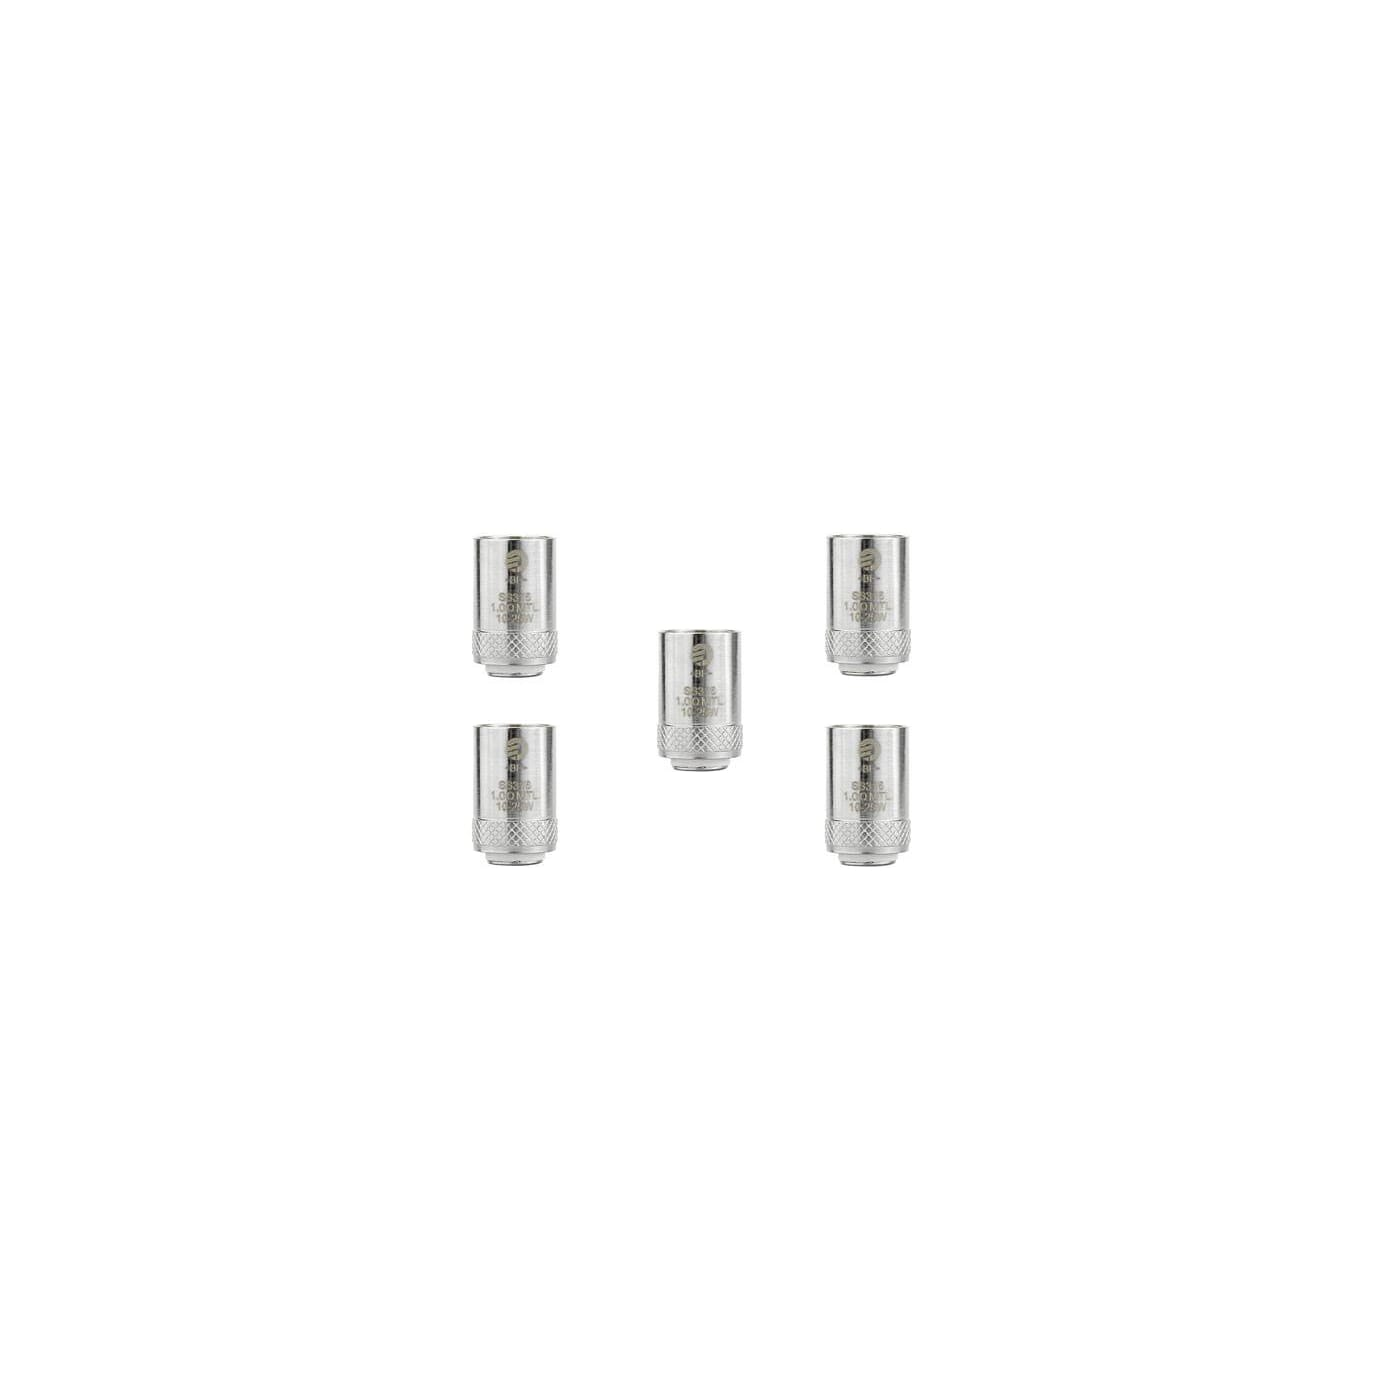 Joyetech Cubis BF Replacement Coil 5